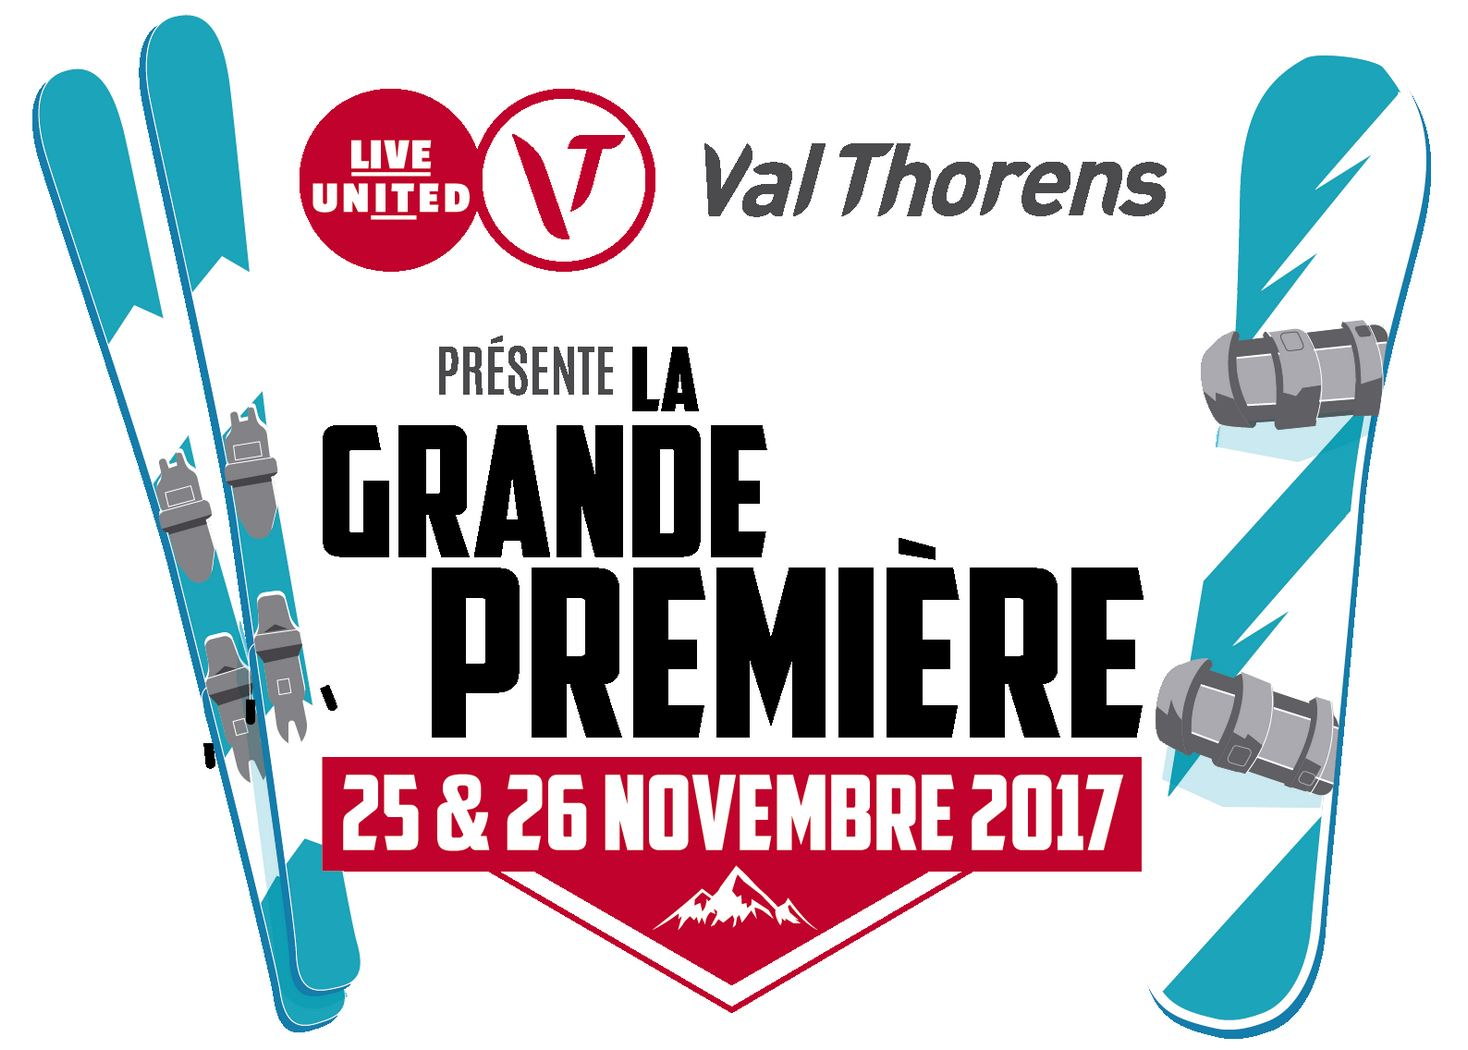 WEEKEND LA GRANDE PREMIERE - FROM 24 TO 26/11/17 - STUDIO AND APARTMENT - FROM 112€ / PERS*